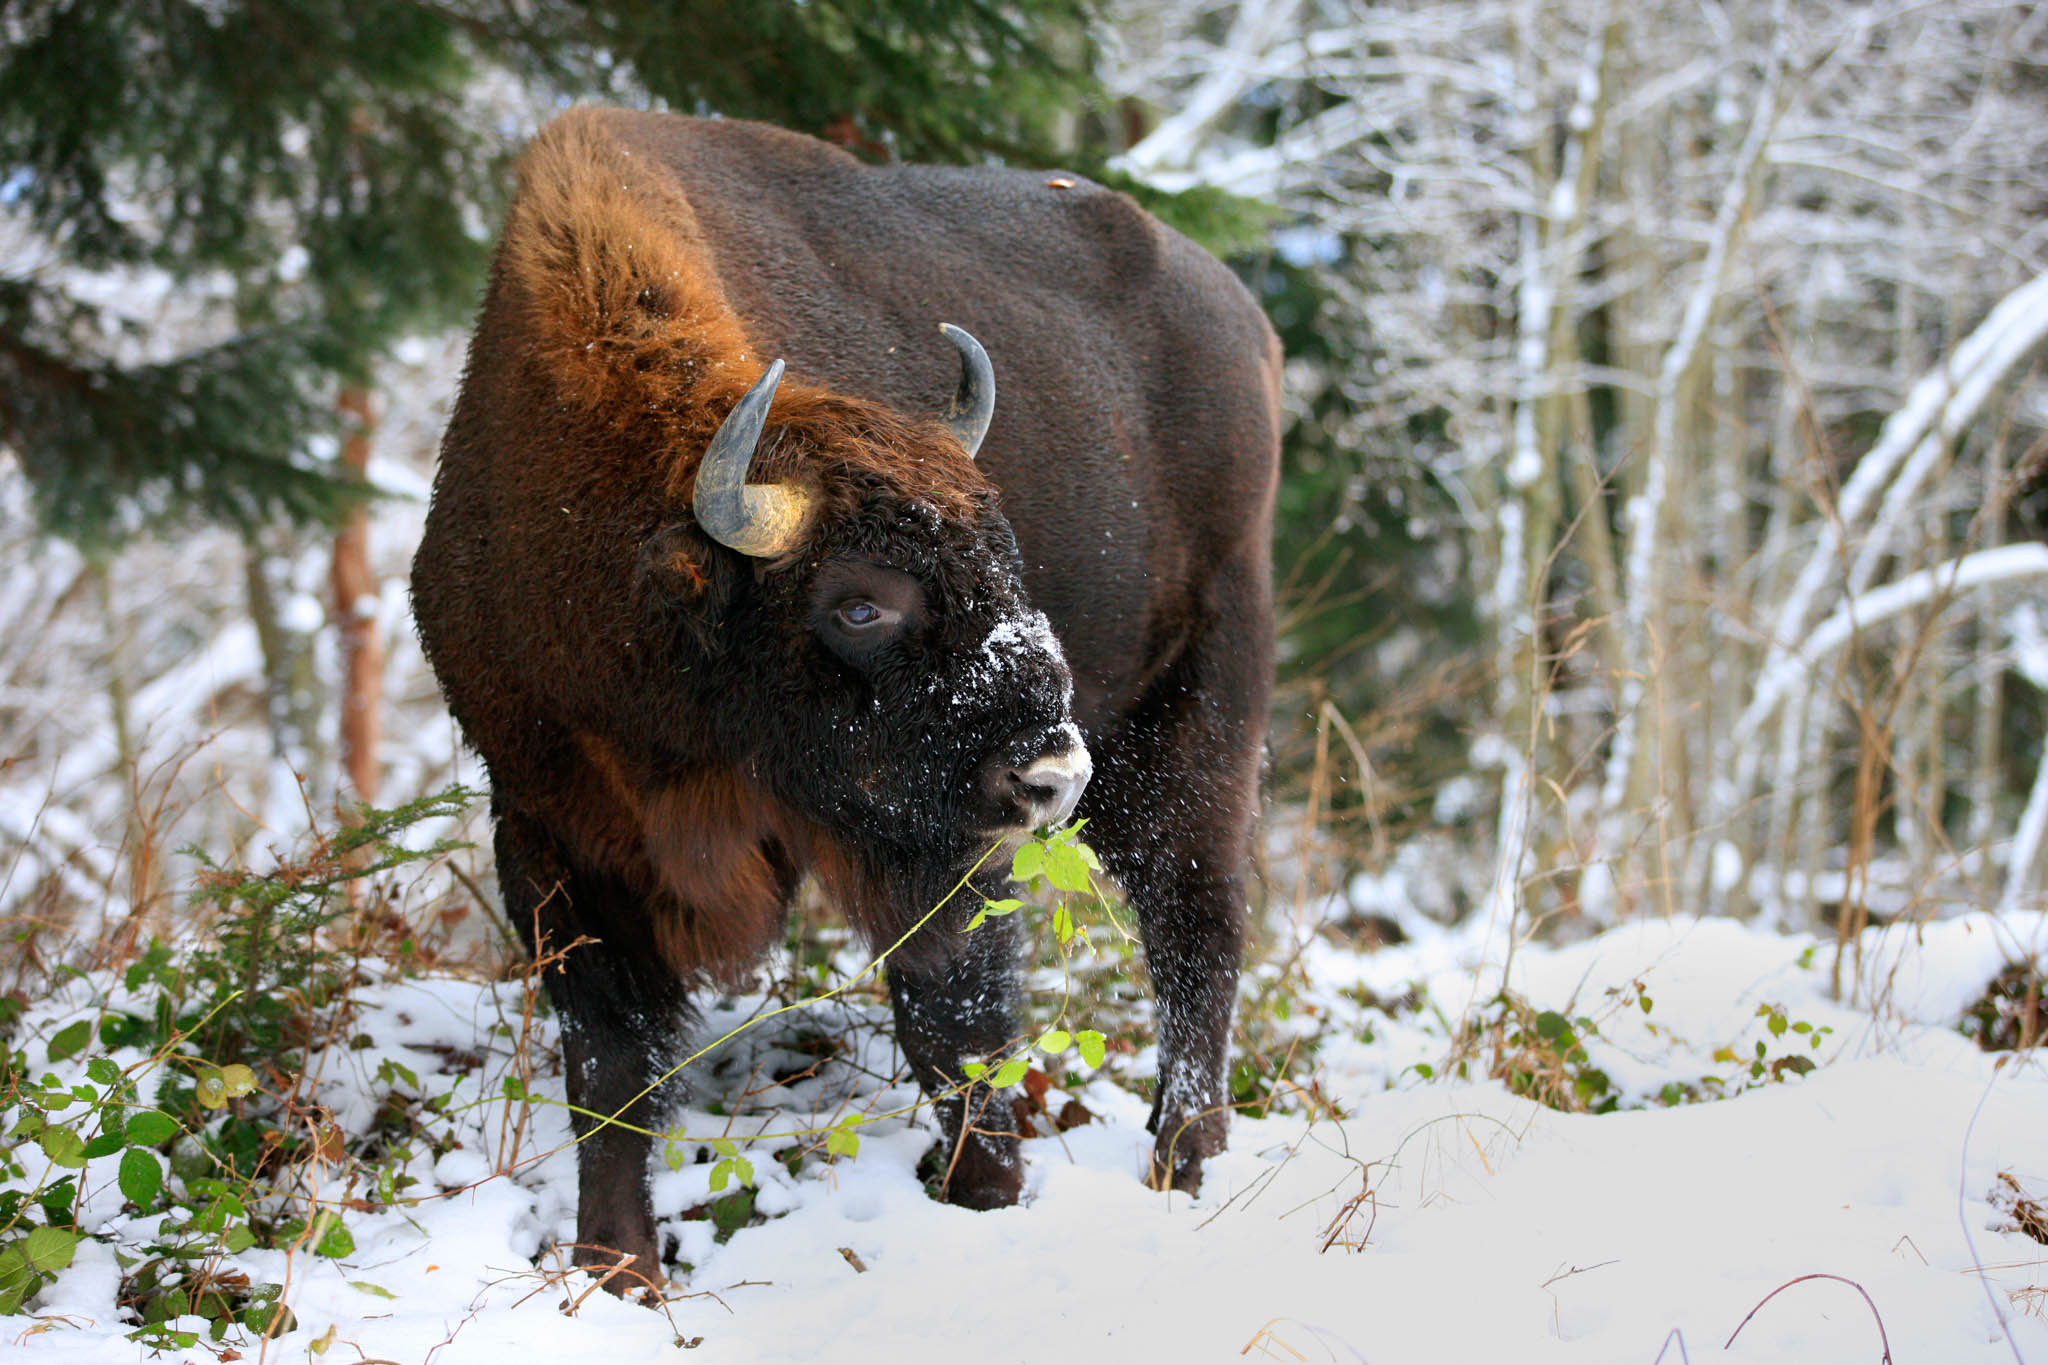 Bison in the Eastern Carpathians rewilding area